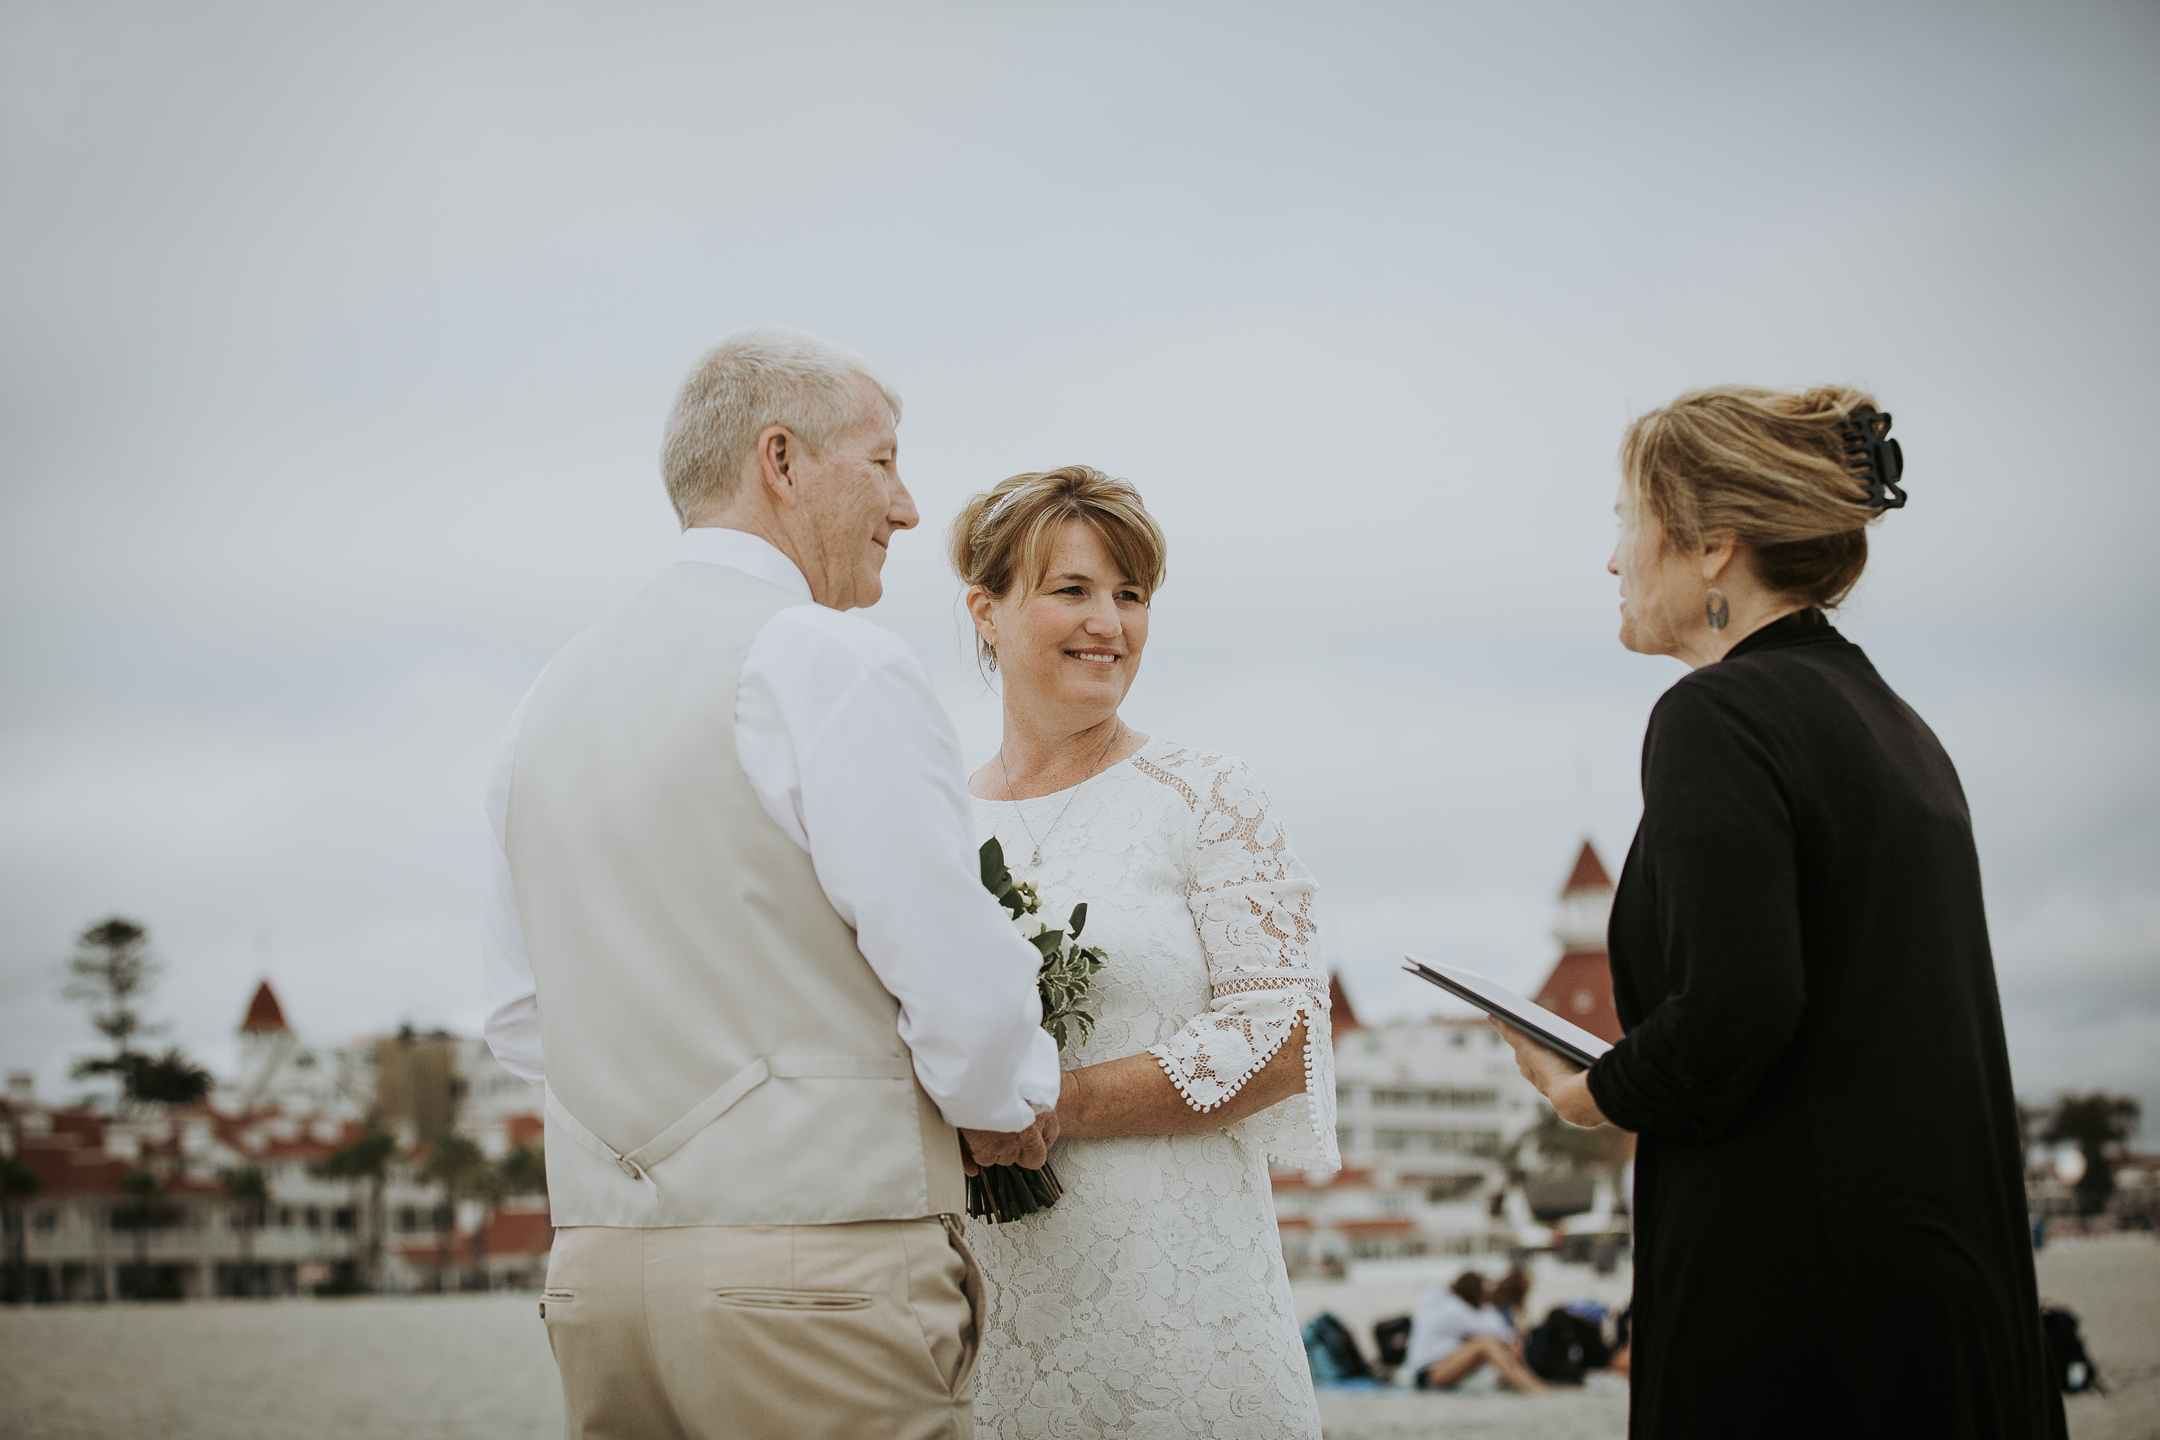 WEDDING photos: Coronado Beach Elopement